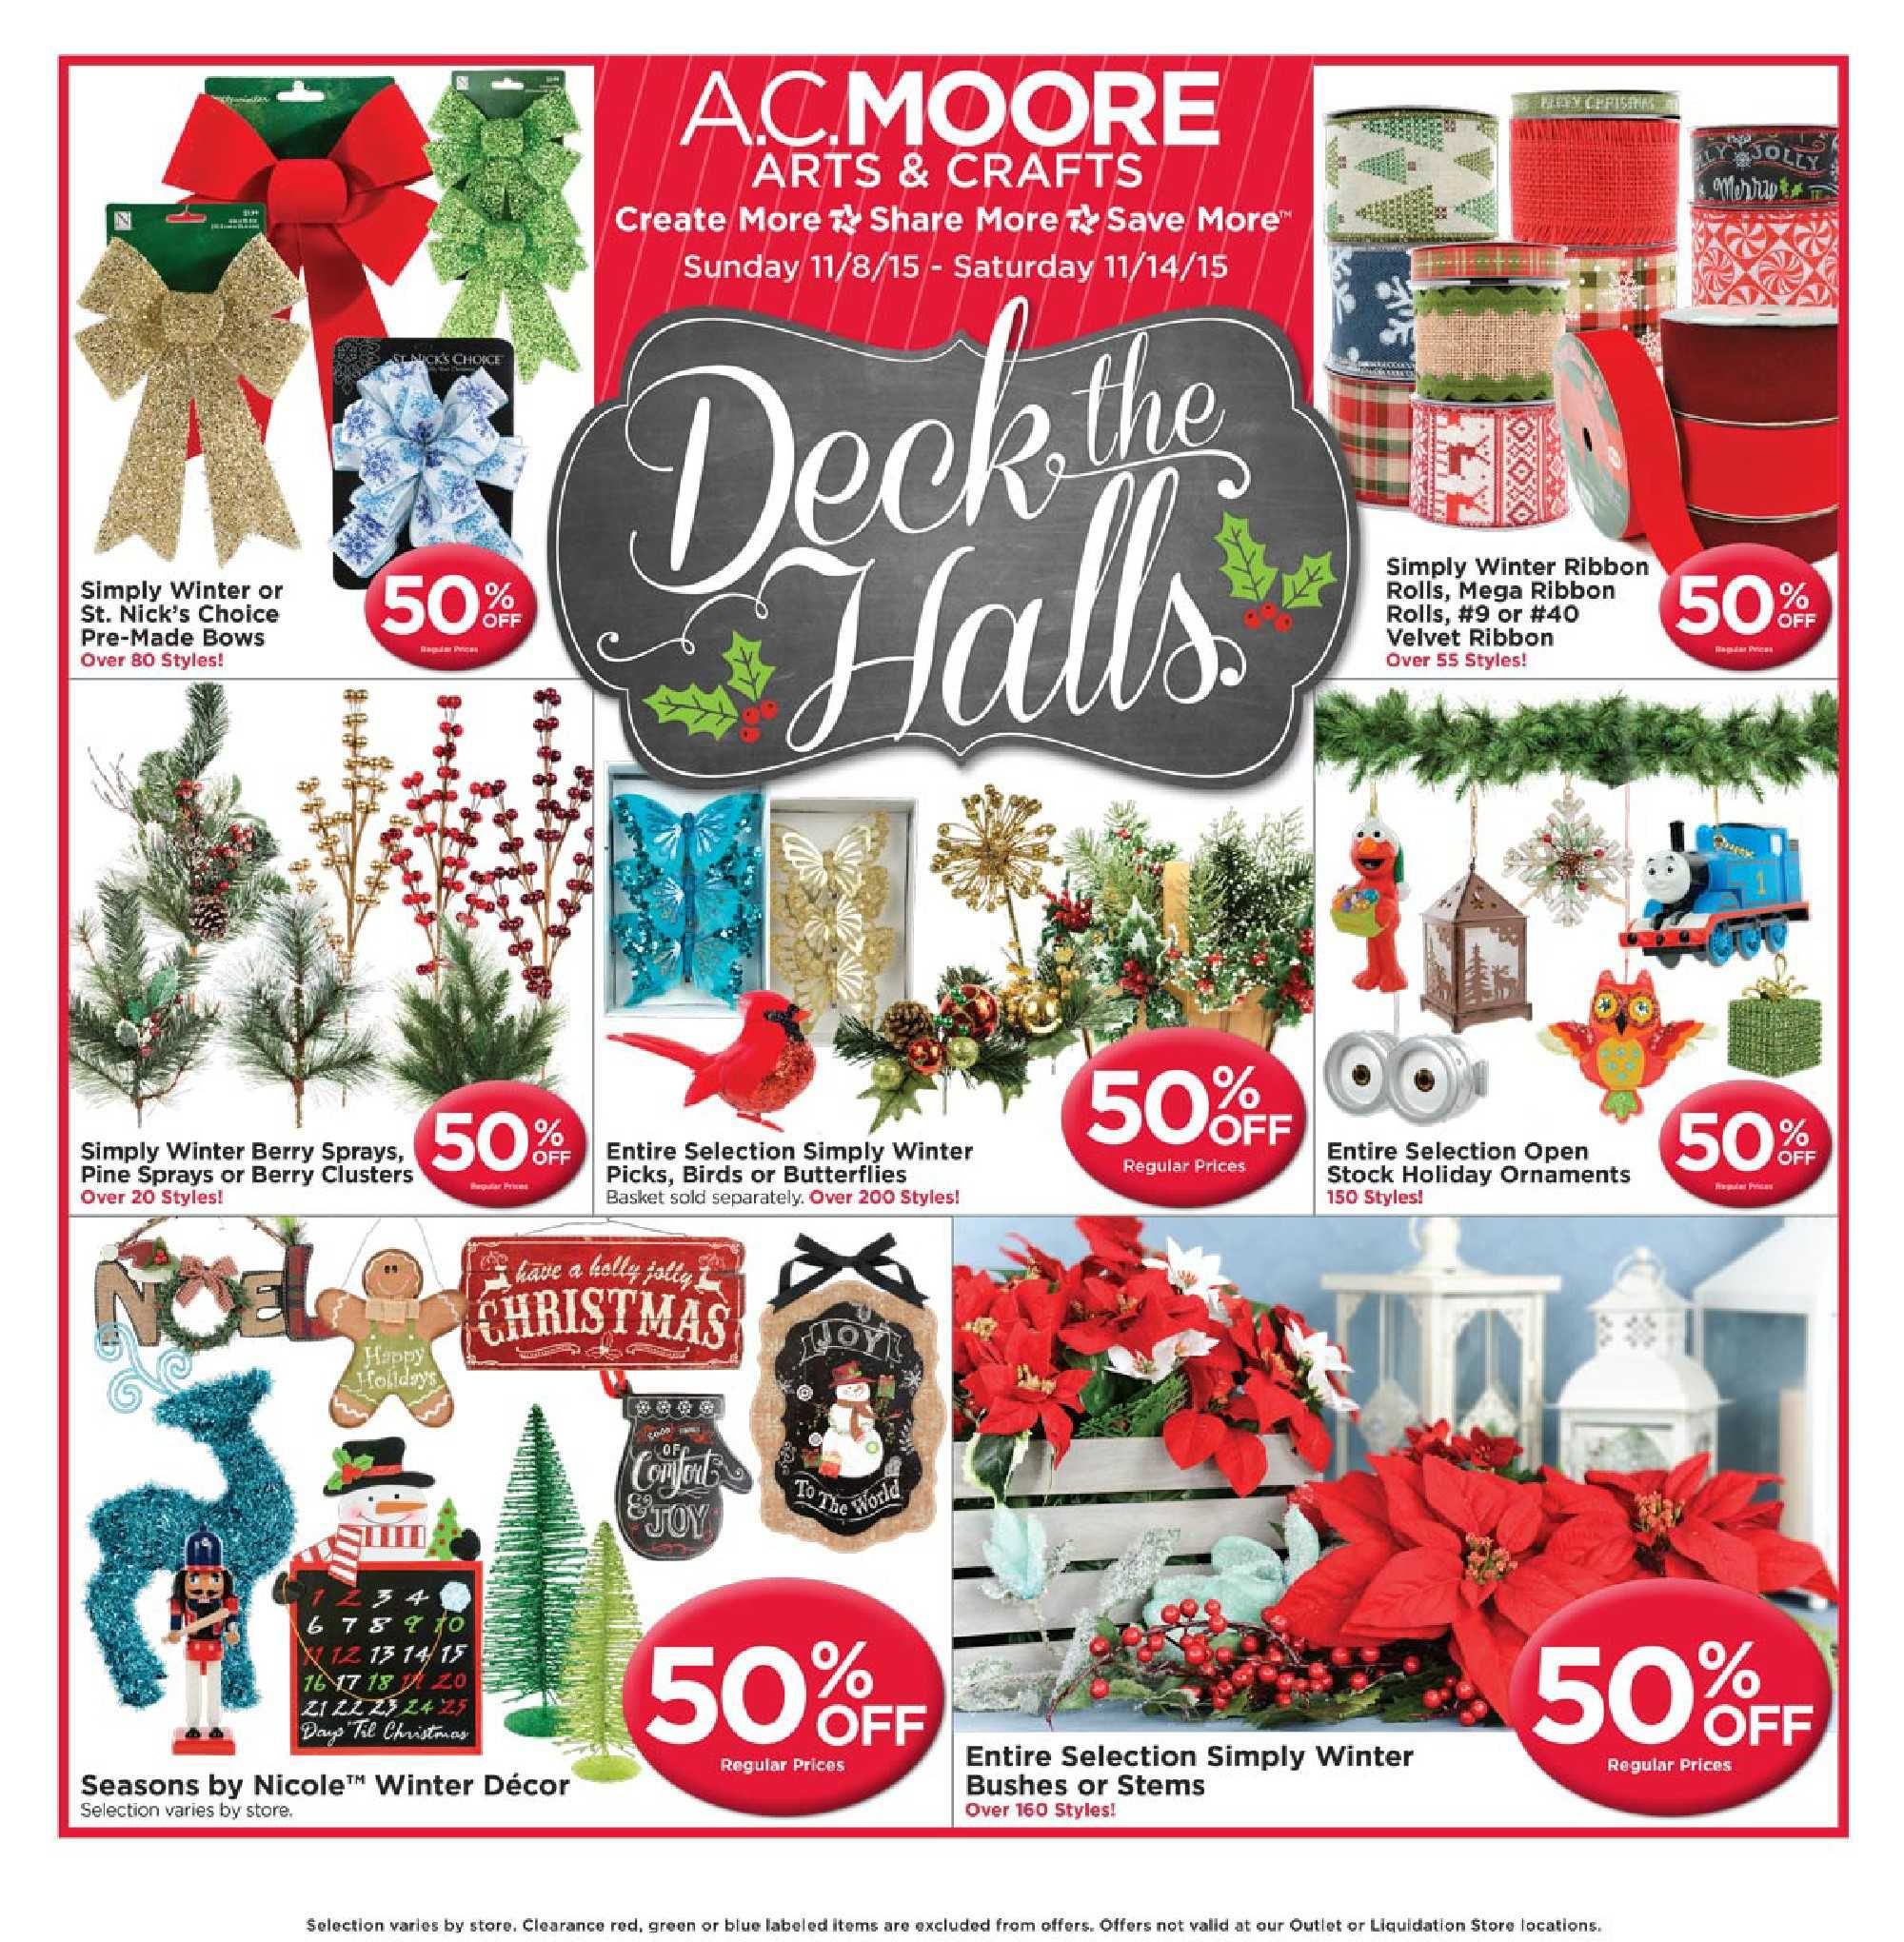 AC Moore Weekly Ad November 8 - 14, 2015 - http://www.olcatalog.com/home-garden/ac-moore-weekly-ad.html